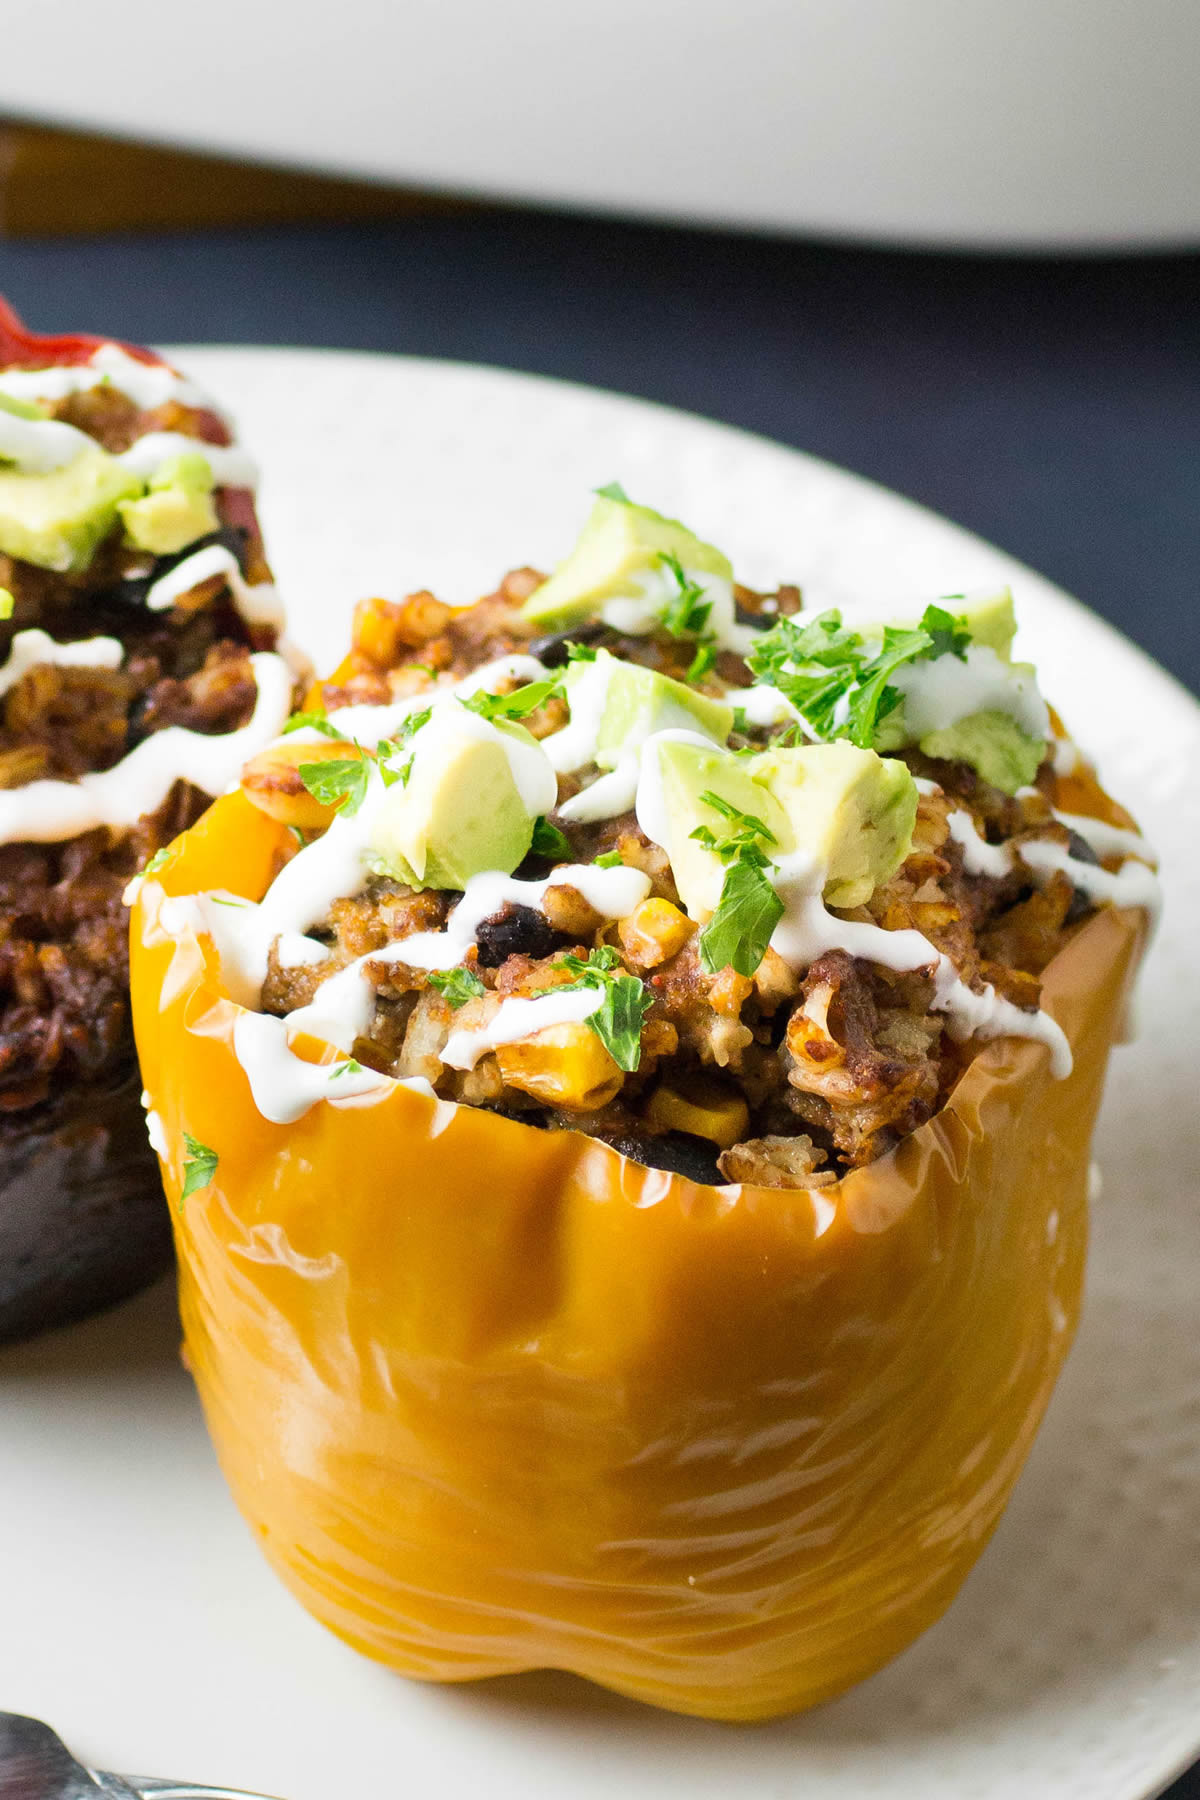 Crockpot Mexican Recipes  Crock Pot Stuffed Peppers – Mexican Style Recipe Chili